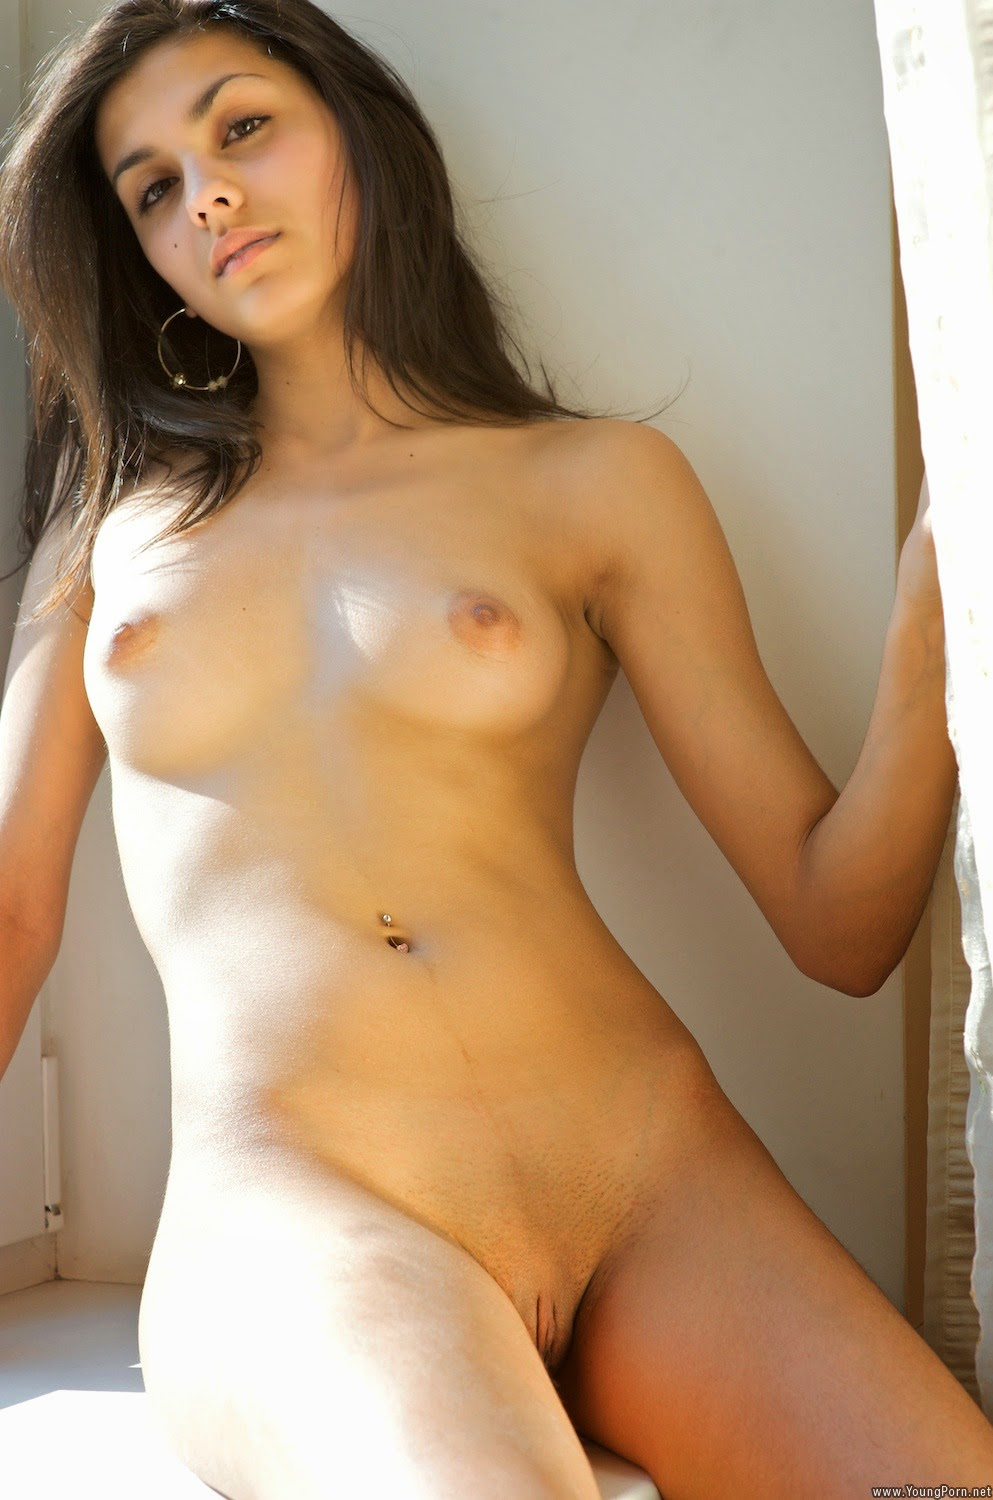 Teen girl nude clothed